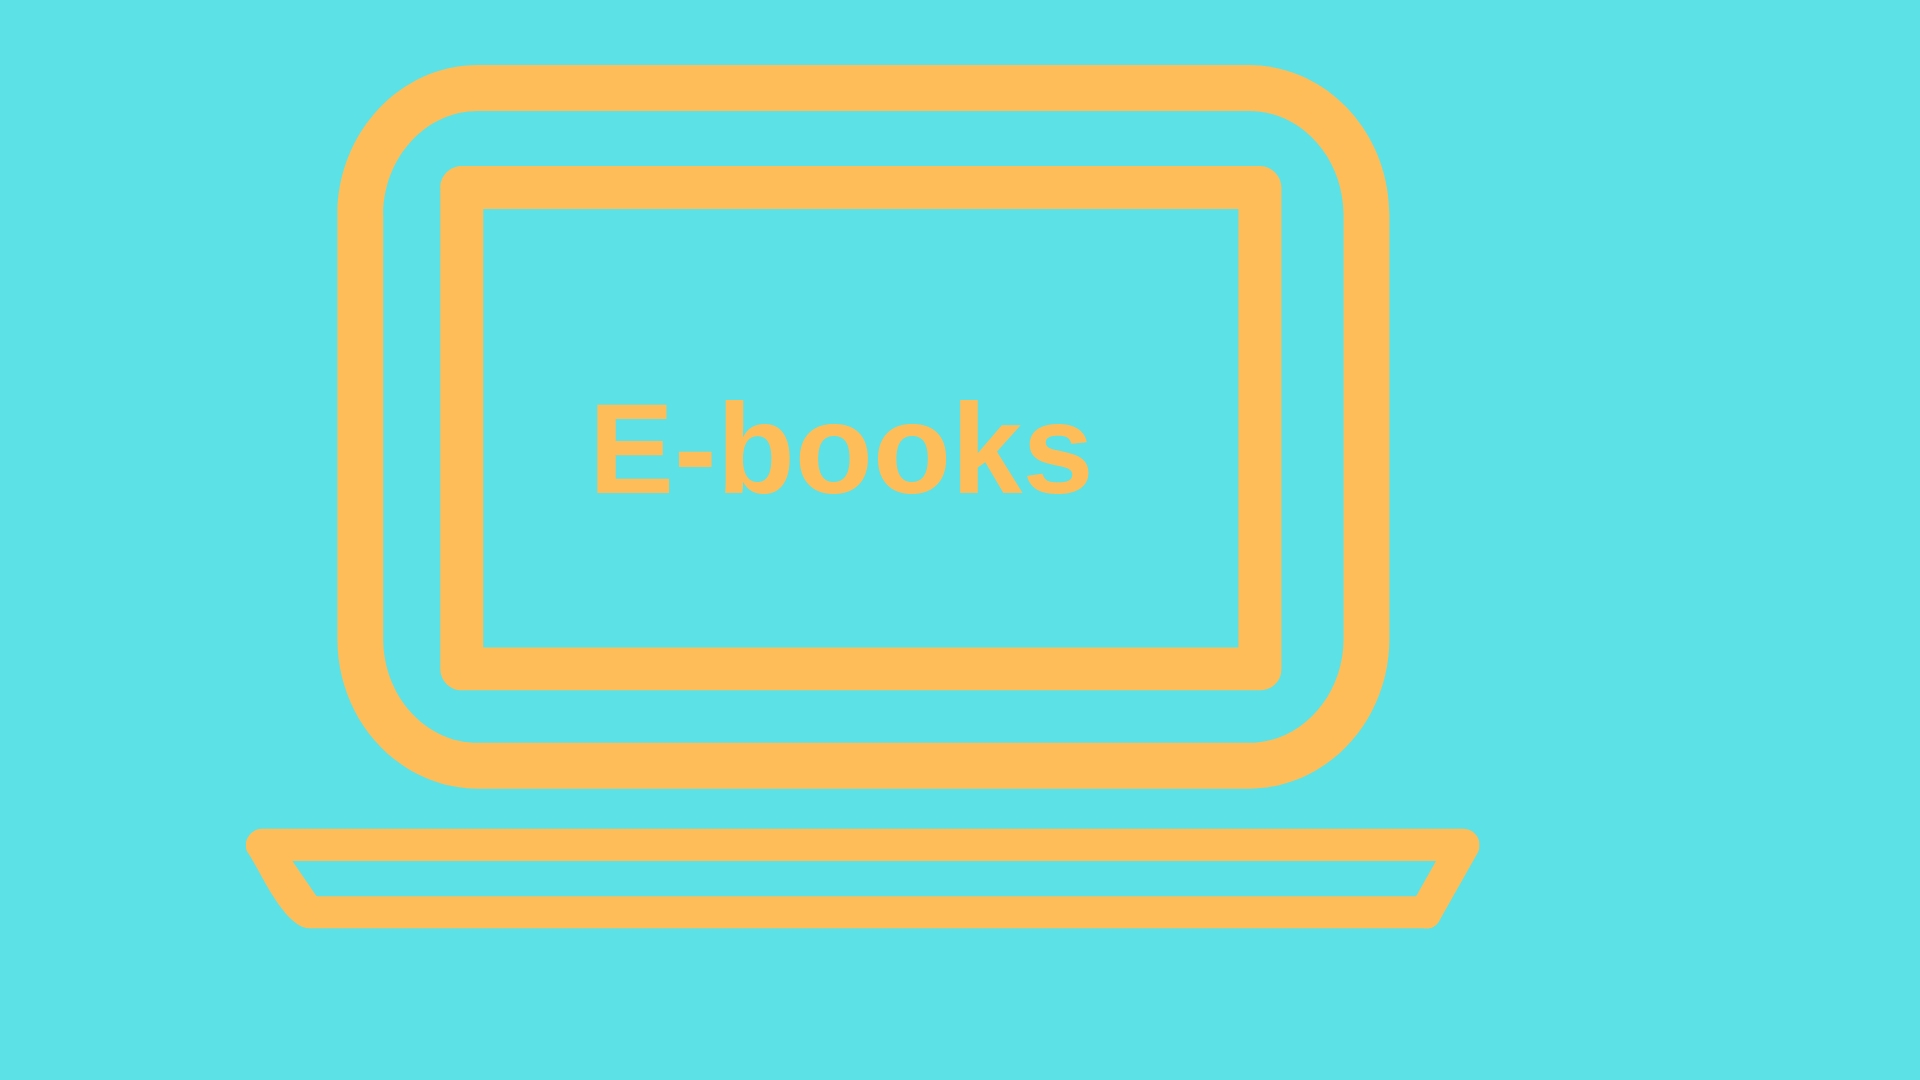 e-books button